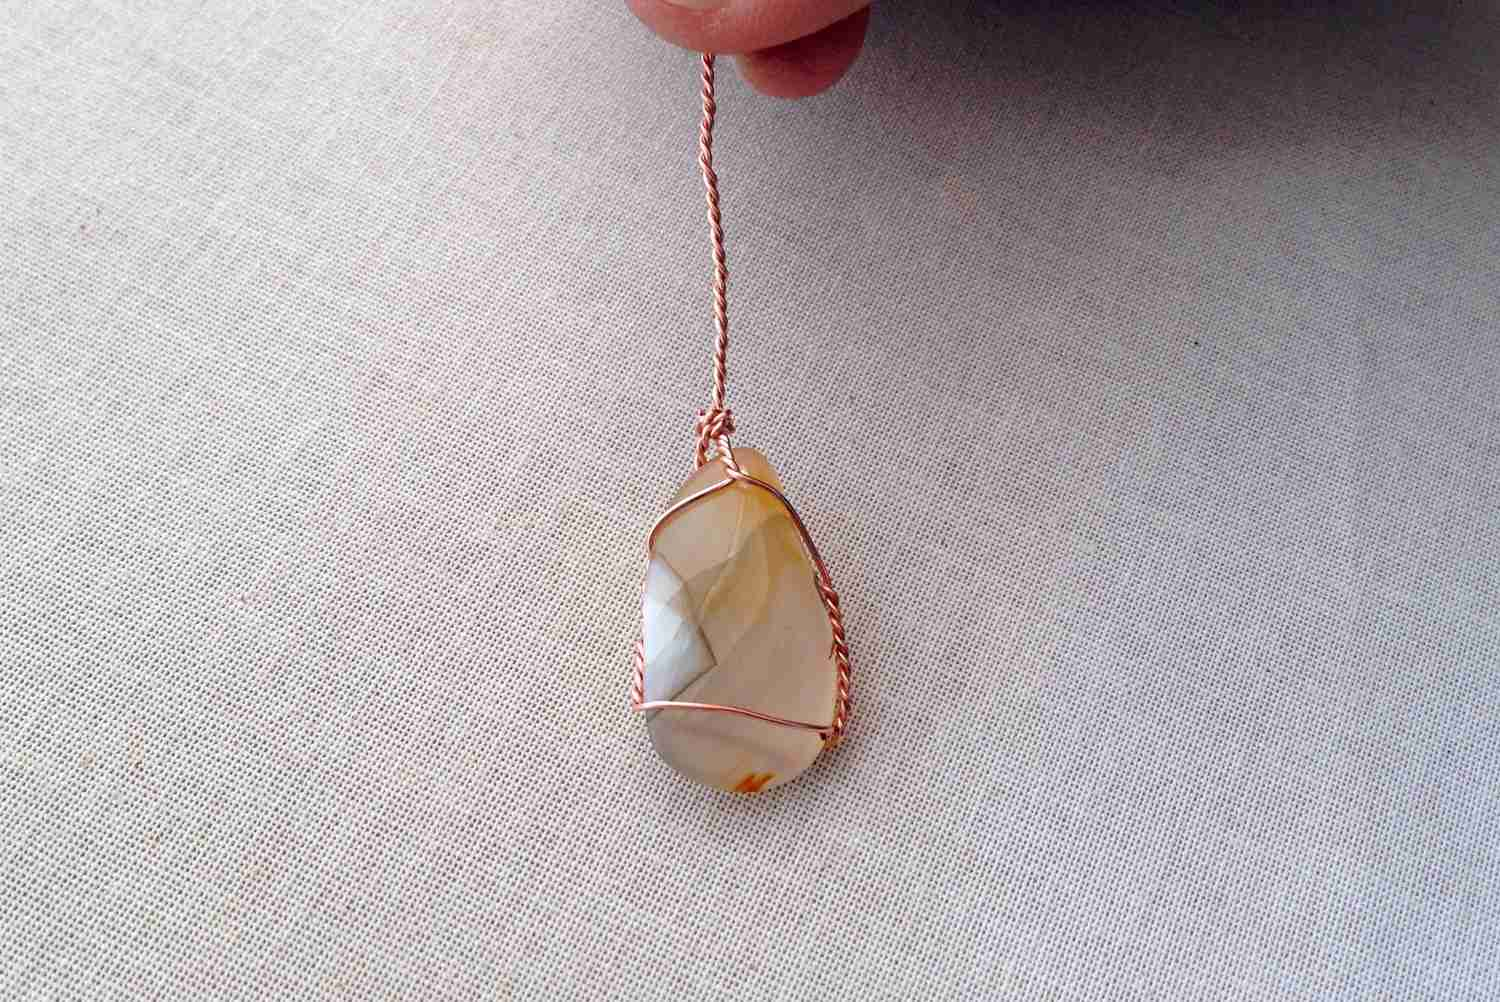 How To Make A Polished Stone A Pendant Necklace